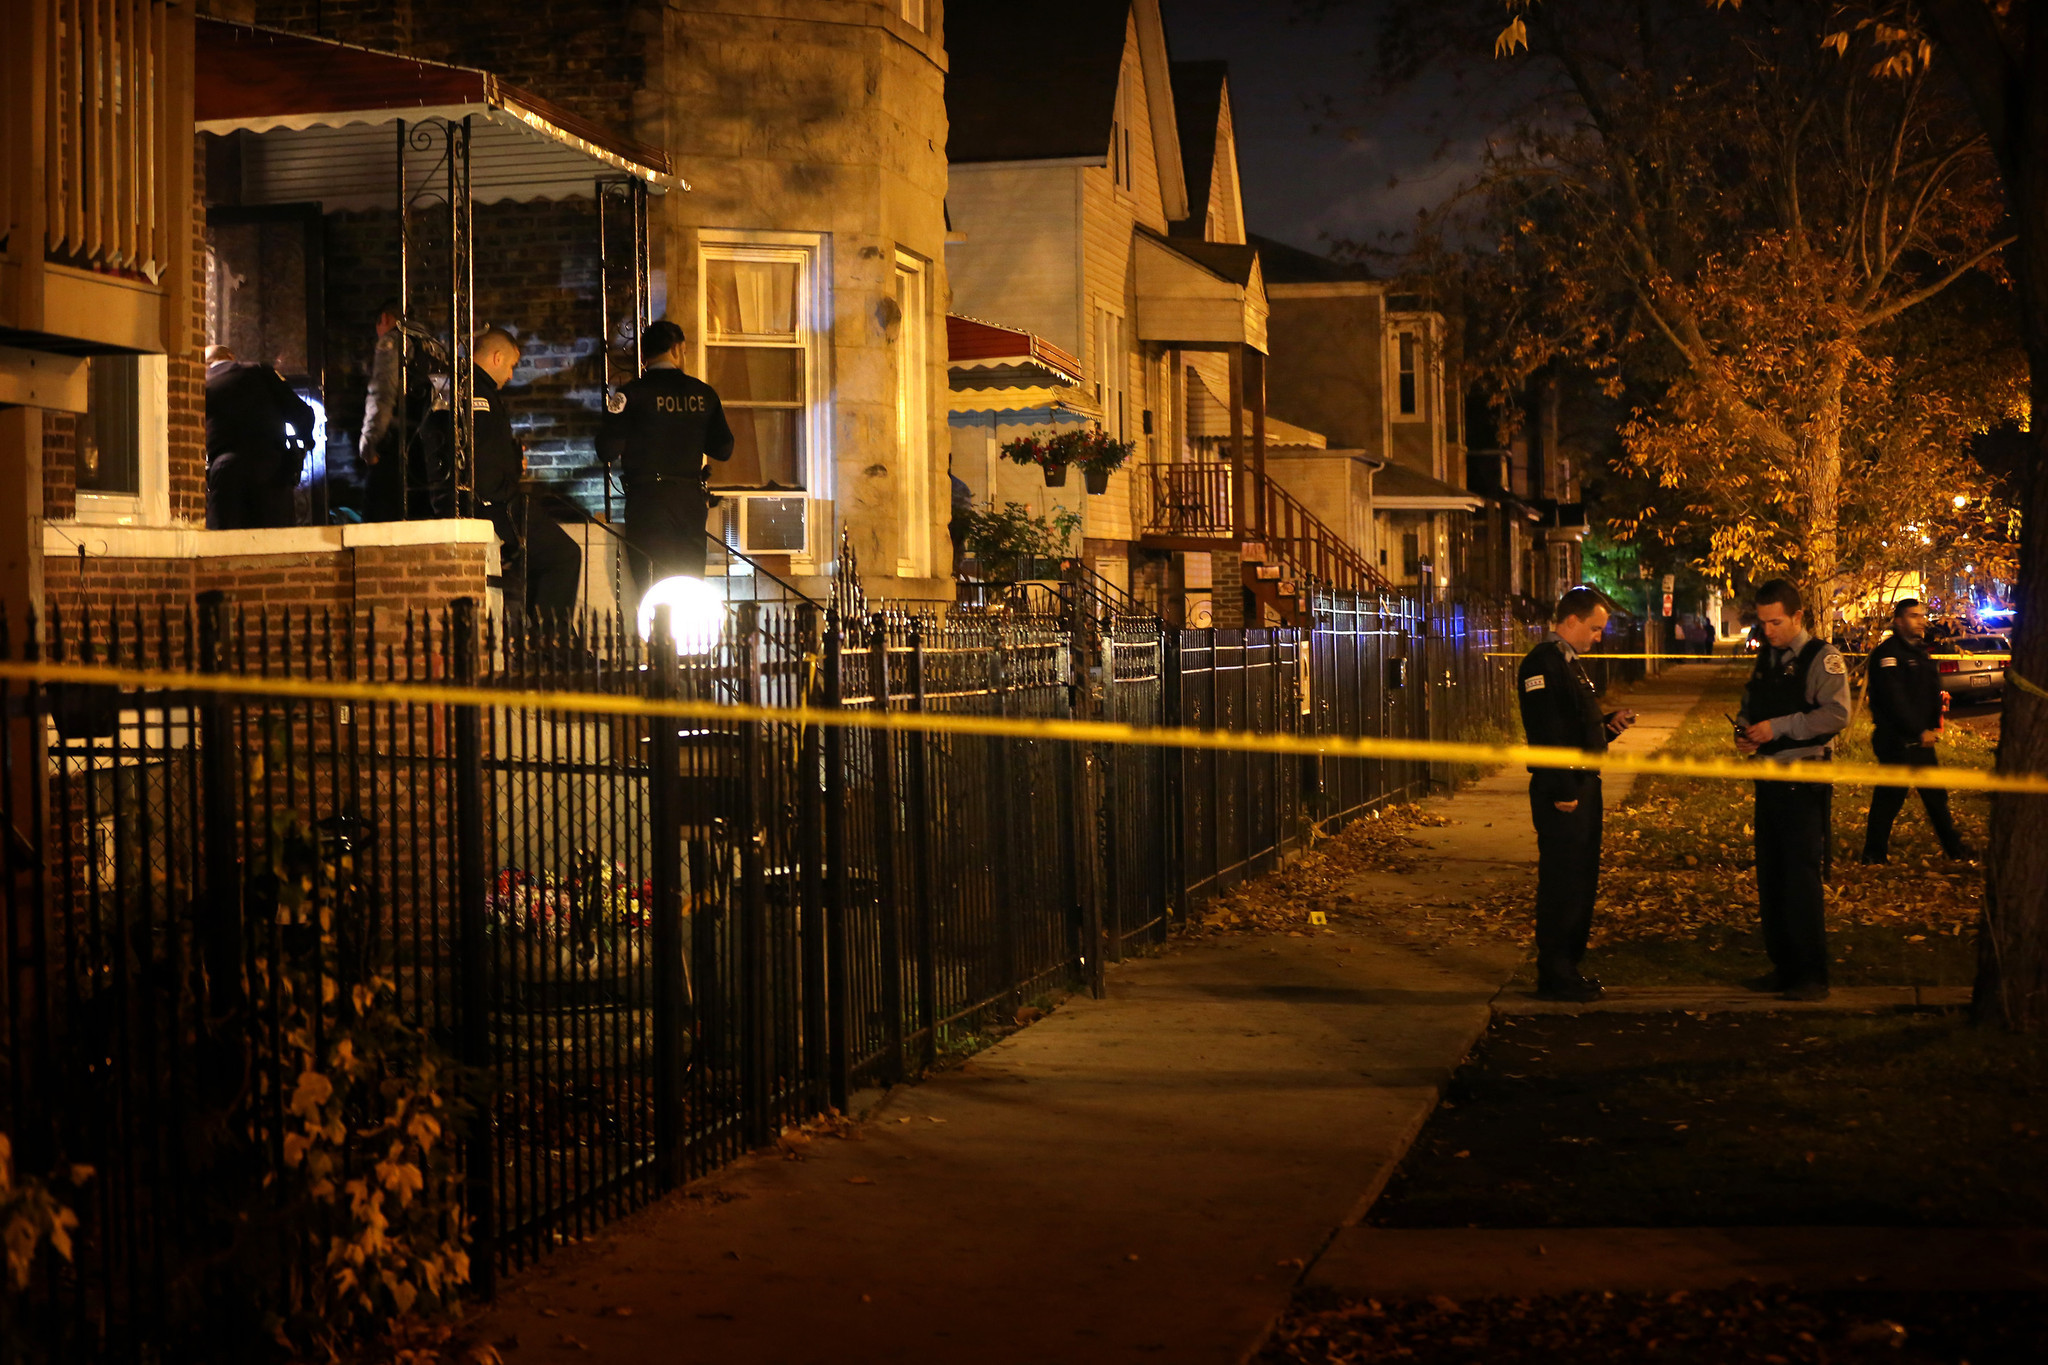 2 dead, 9 wounded in shootings since Friday afternoon